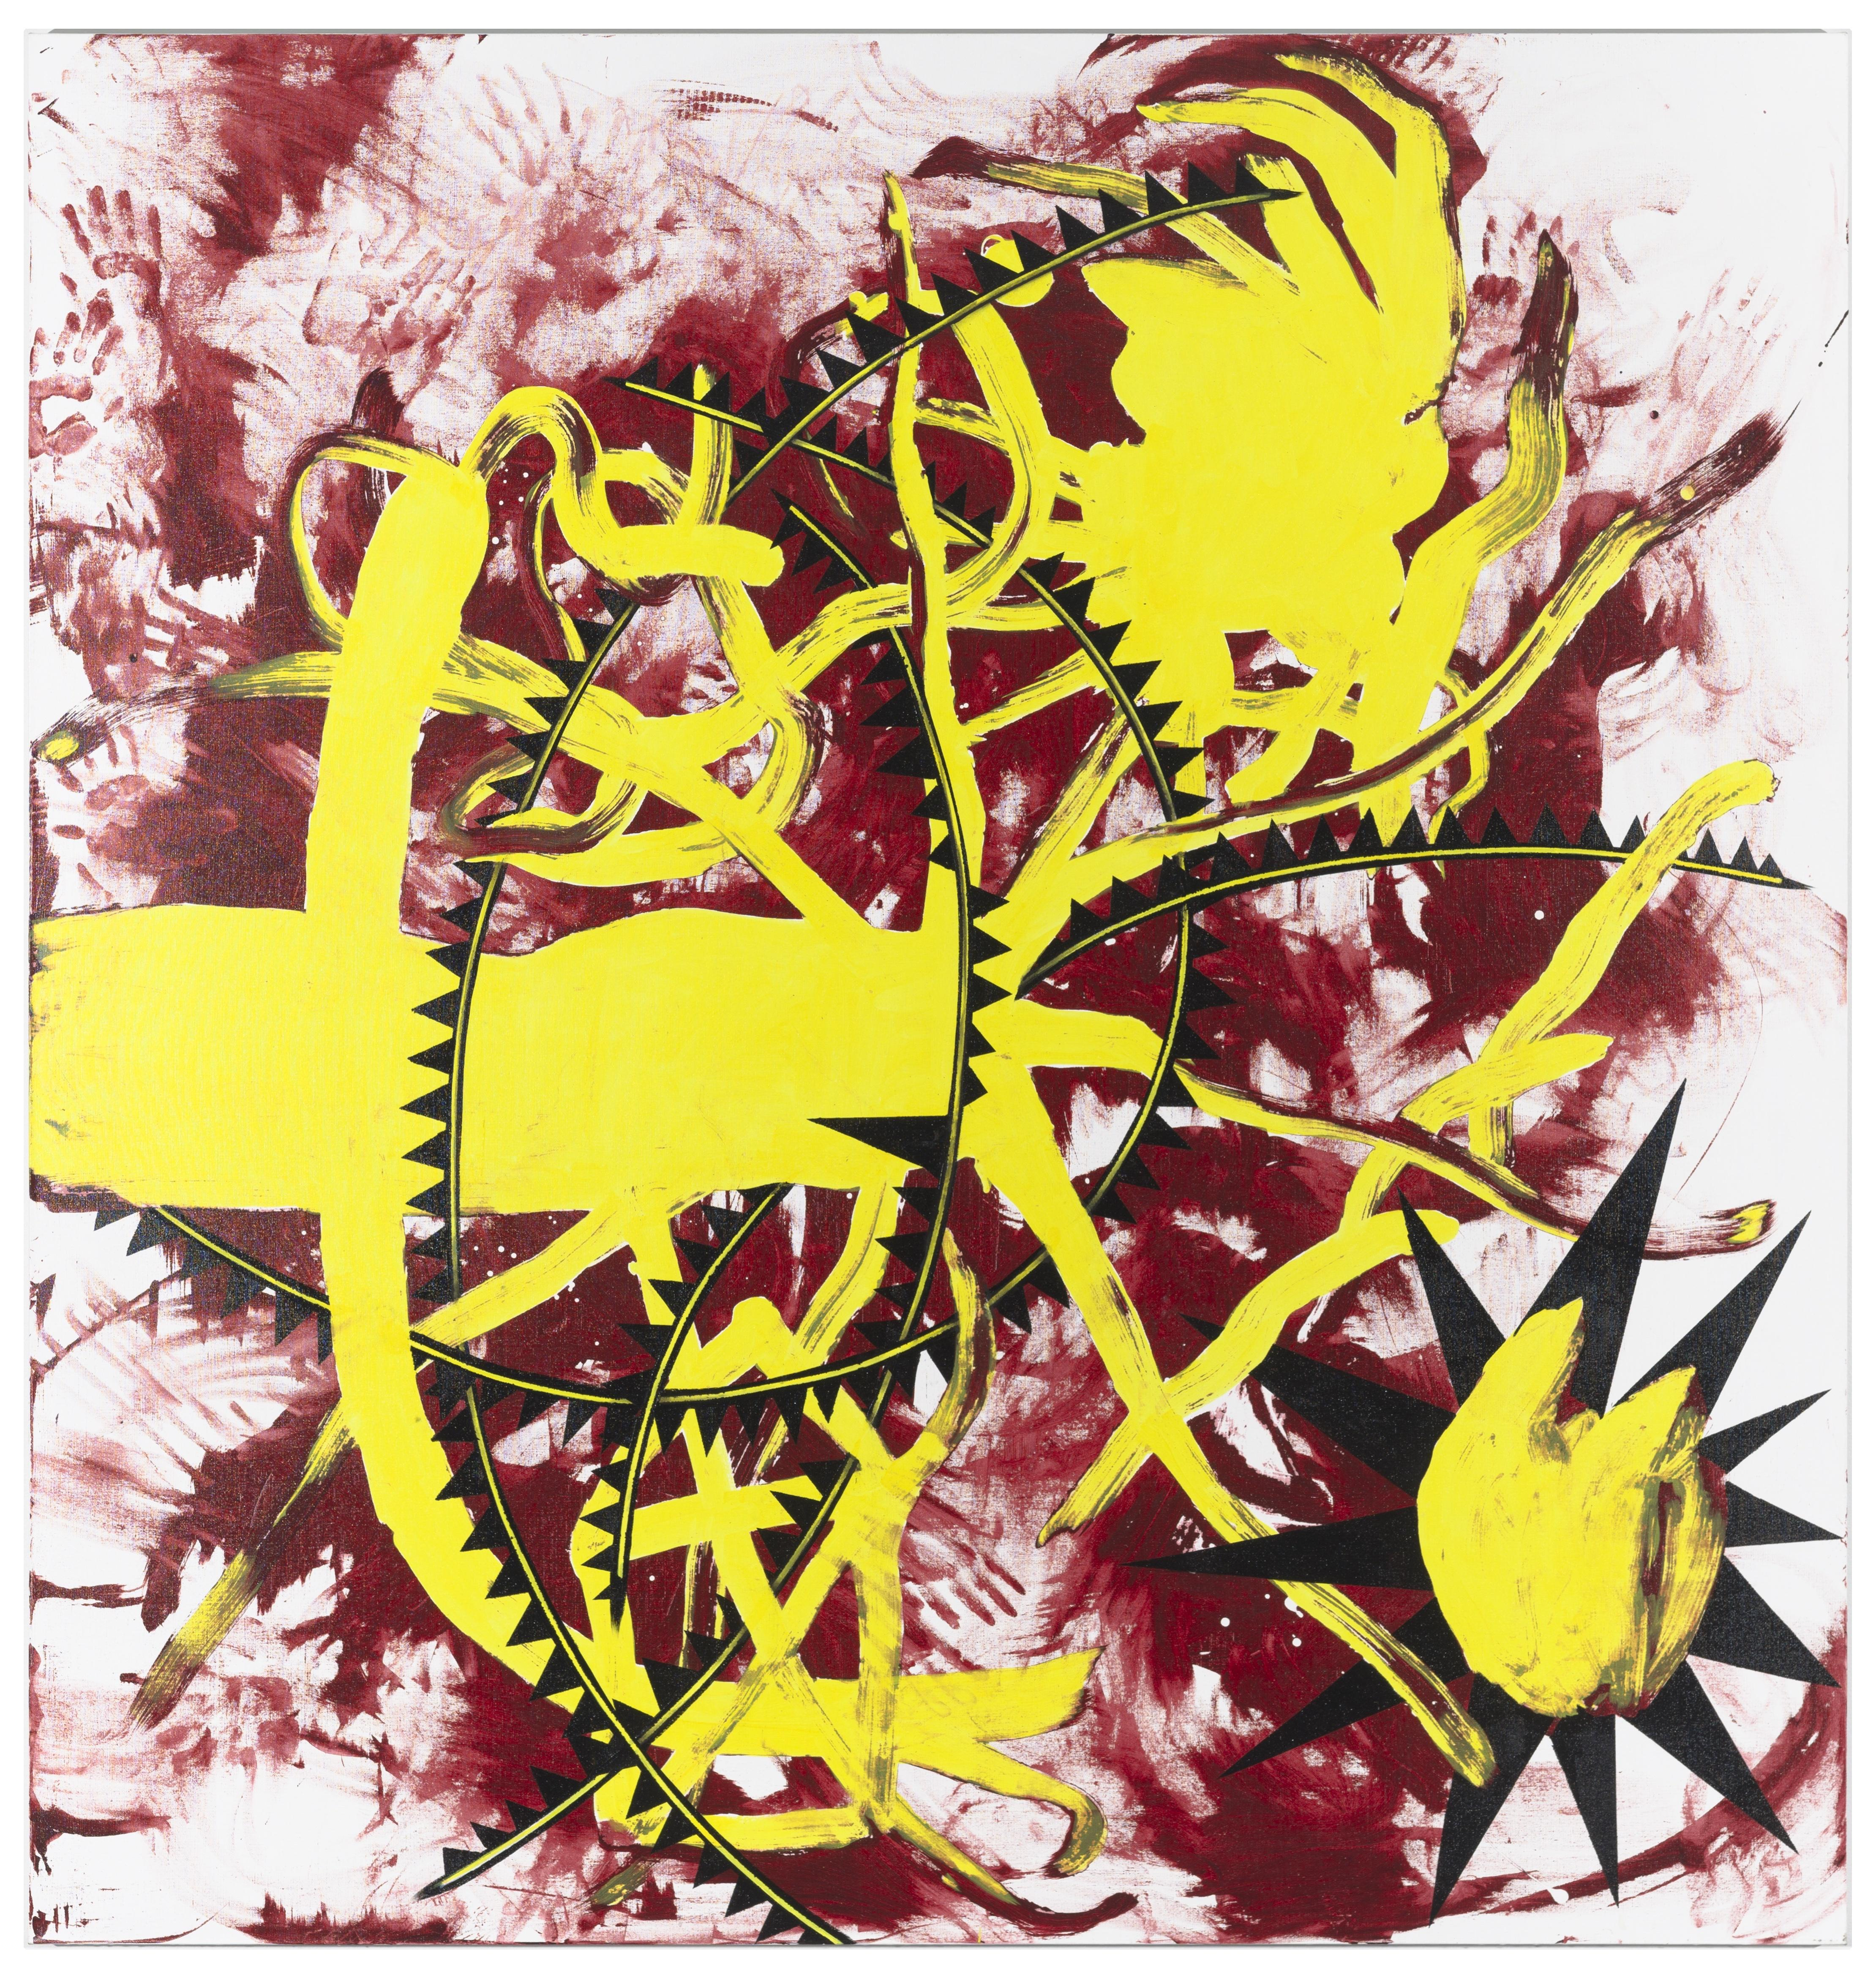 Bright yellow organic shapes with black triangles of varying sizes appear in the foreground of this painting, while red streaks and smeared handprints appear in the background.